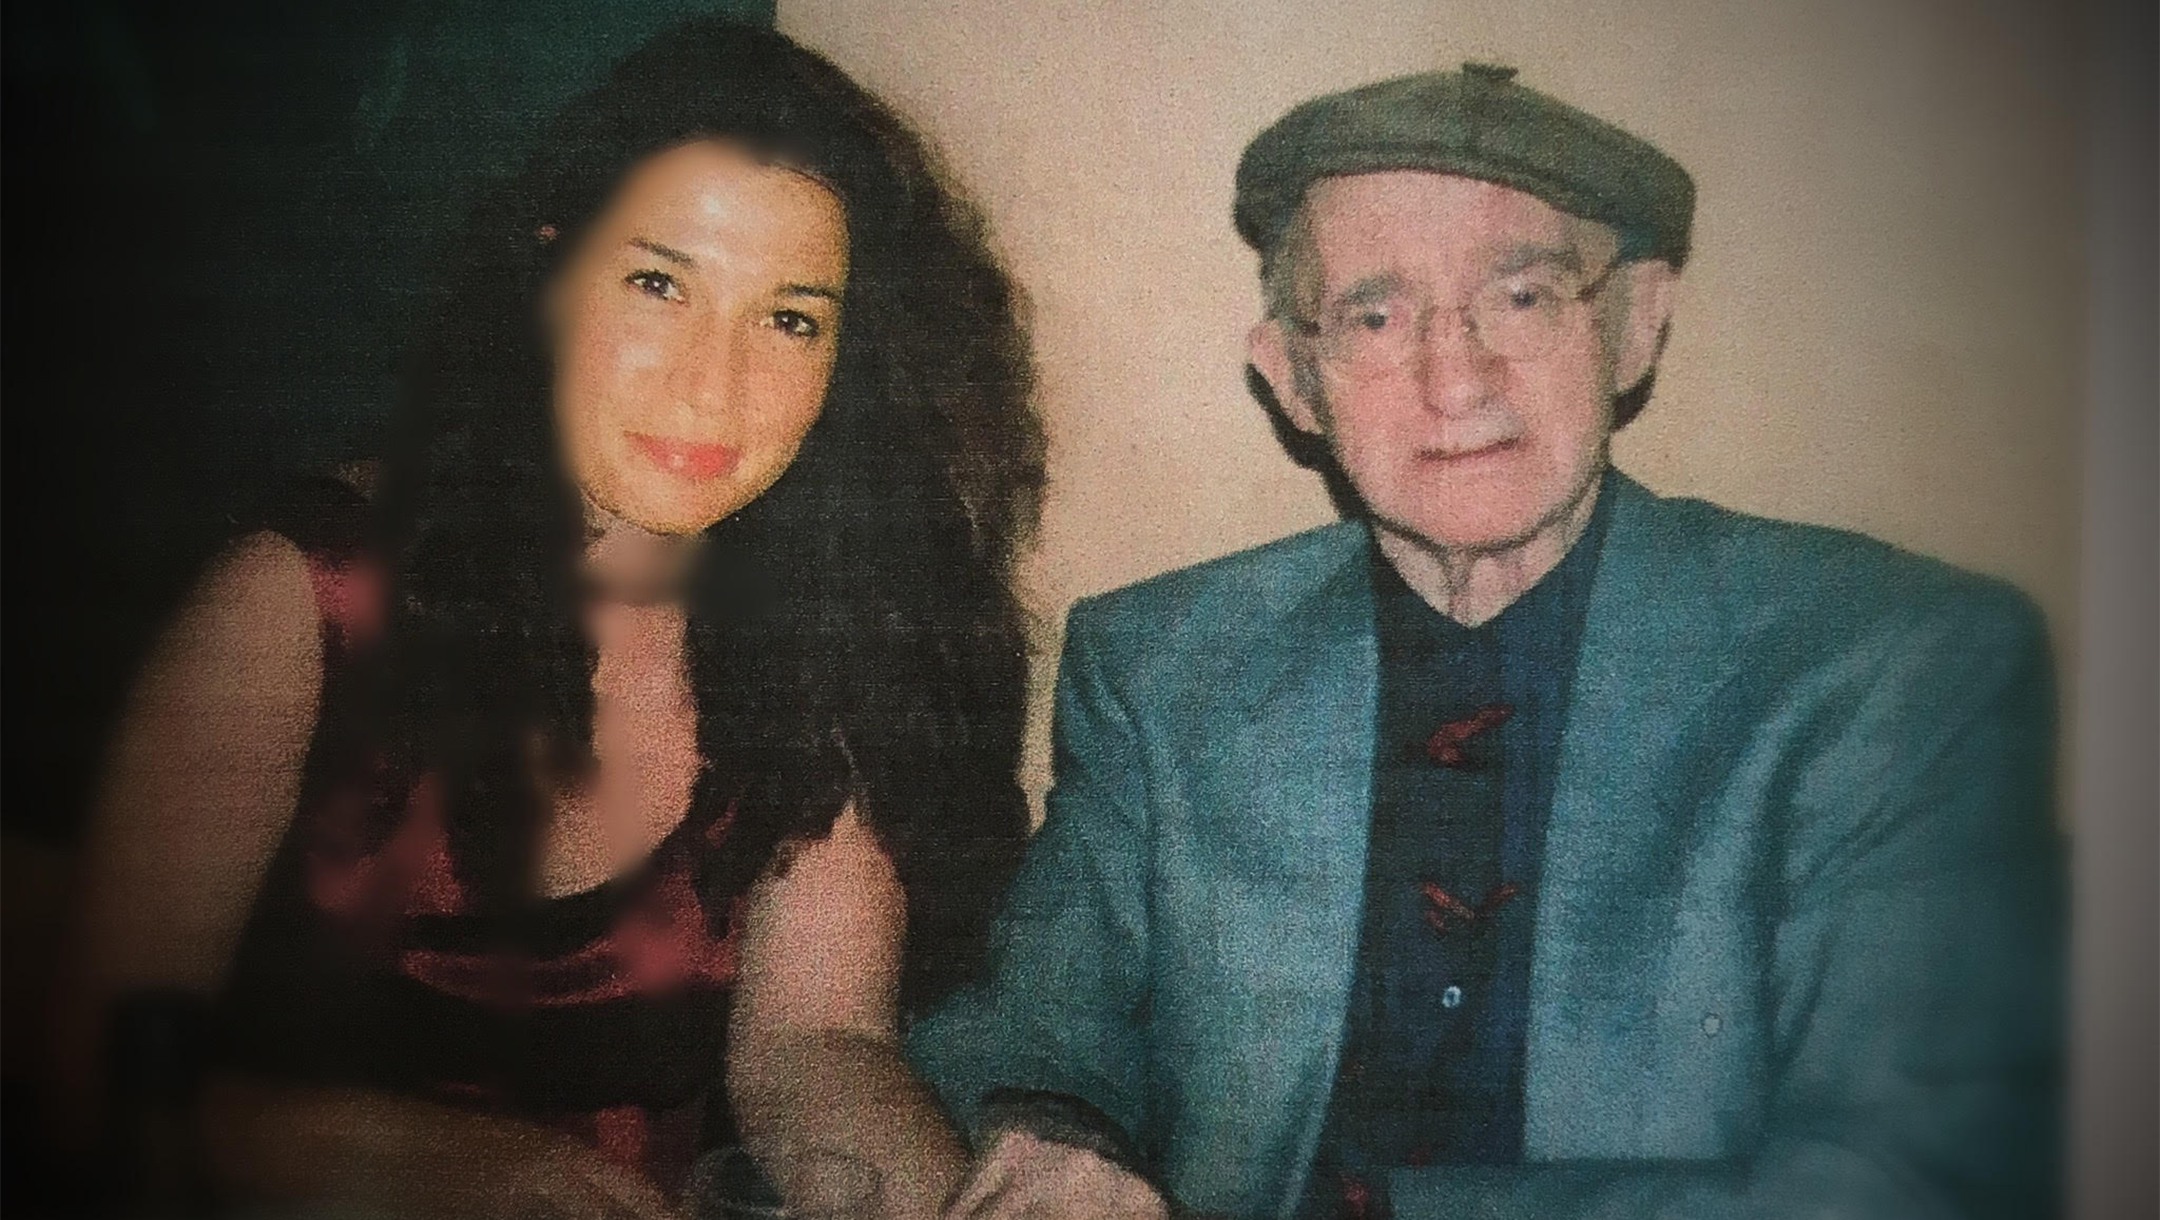 Abraham Sutzkever with his granddaughter Hadas in 2008 in Tel Aviv, Israel. (Courtesy of Hadas Kalderon-Sutzkever)